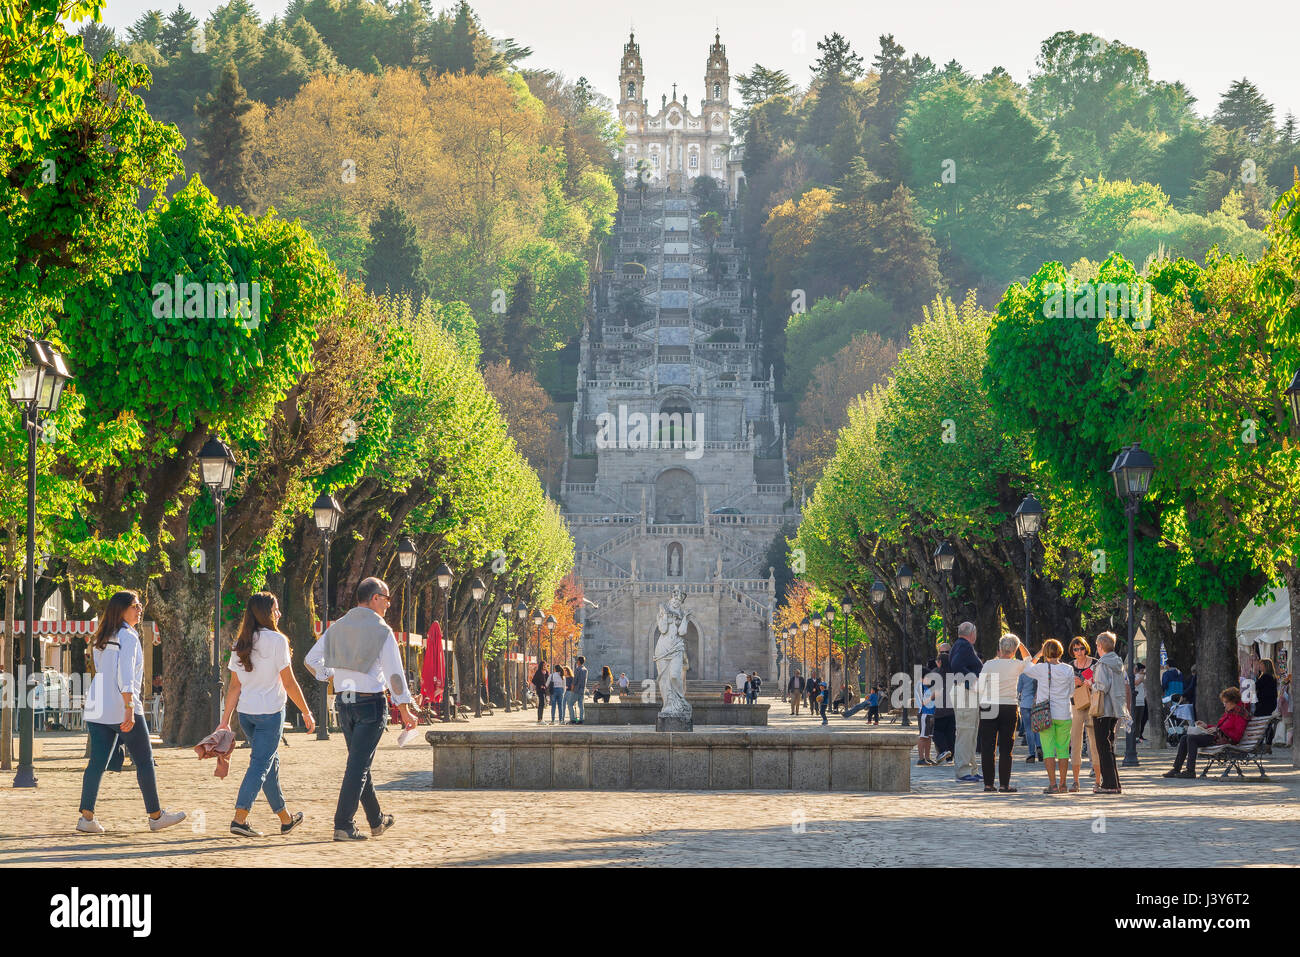 Lamego Portugal center, view along the Avenida Dr A de Sousa towards the Baroque stairway leading to the Nossa Senhora - Stock Image